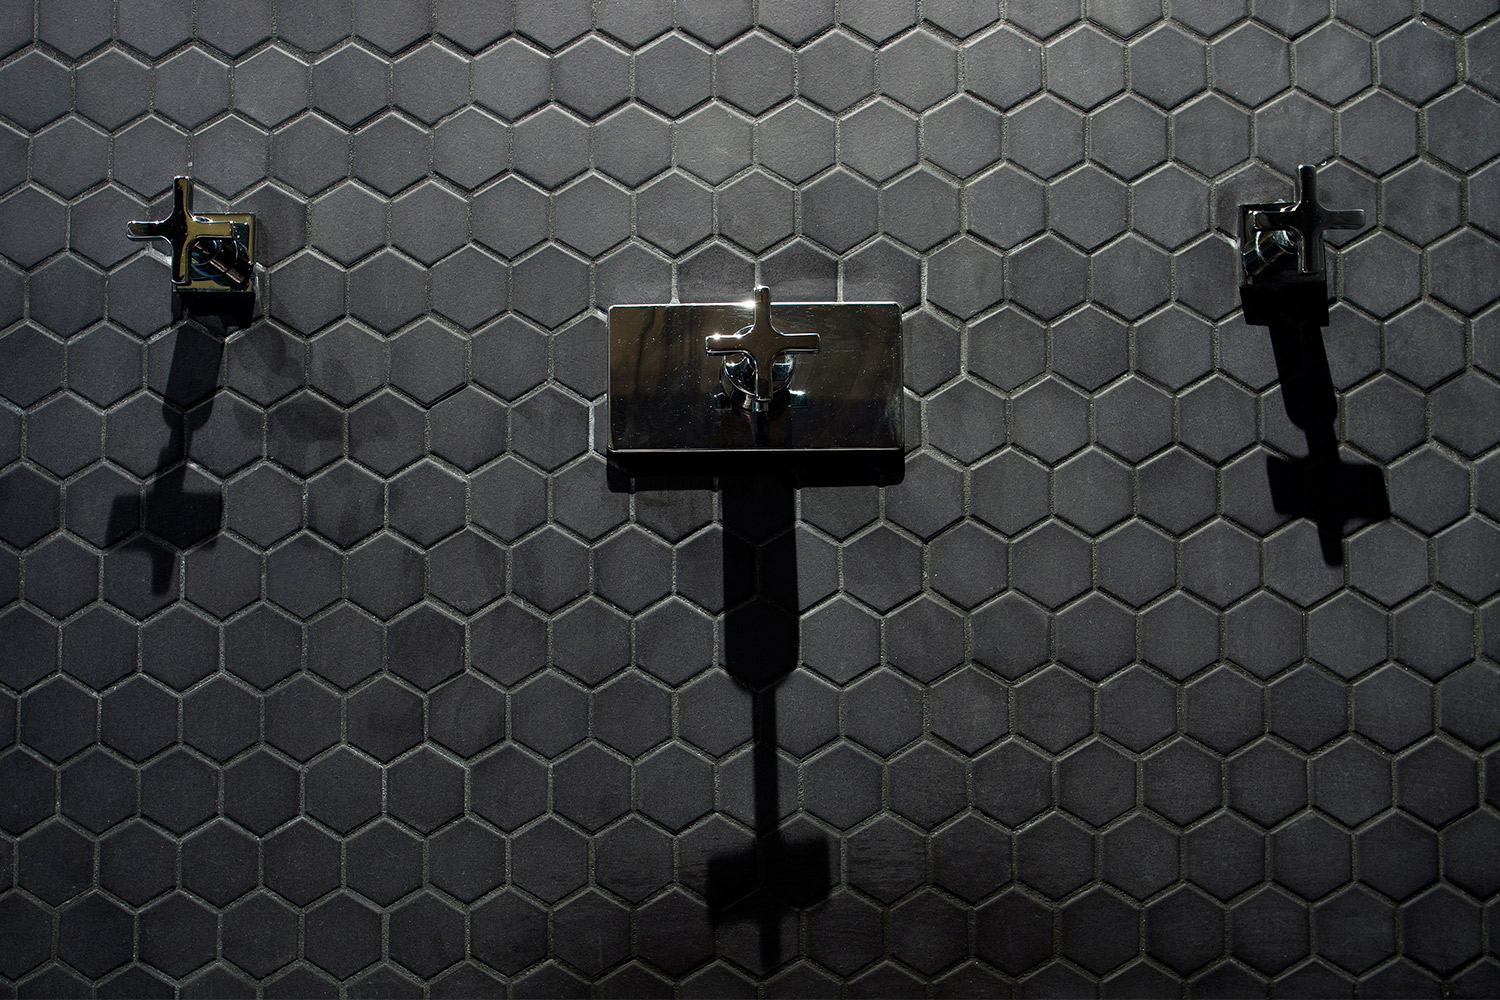 Renovation of monochrome bathroom in an apartment. Detail view of the shower faucet on black hexagonal mosaic wall.